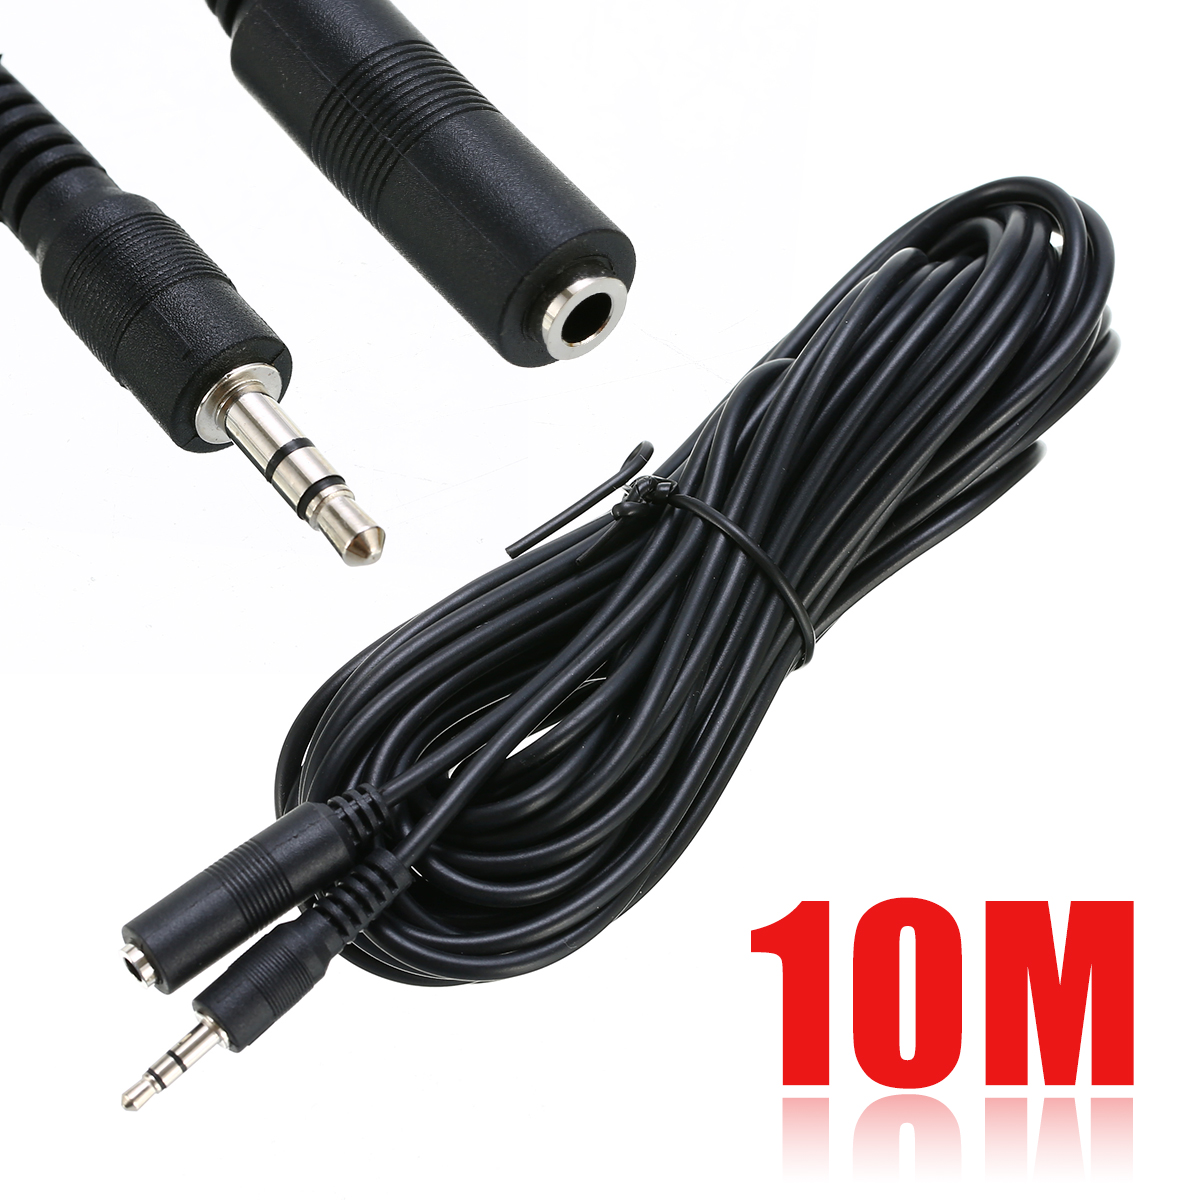 Mayitr Infrared Receiver Extender Cable IR Repeater Extension Cable Extender Wire 10M 3.5mm Plug Headphone Cable